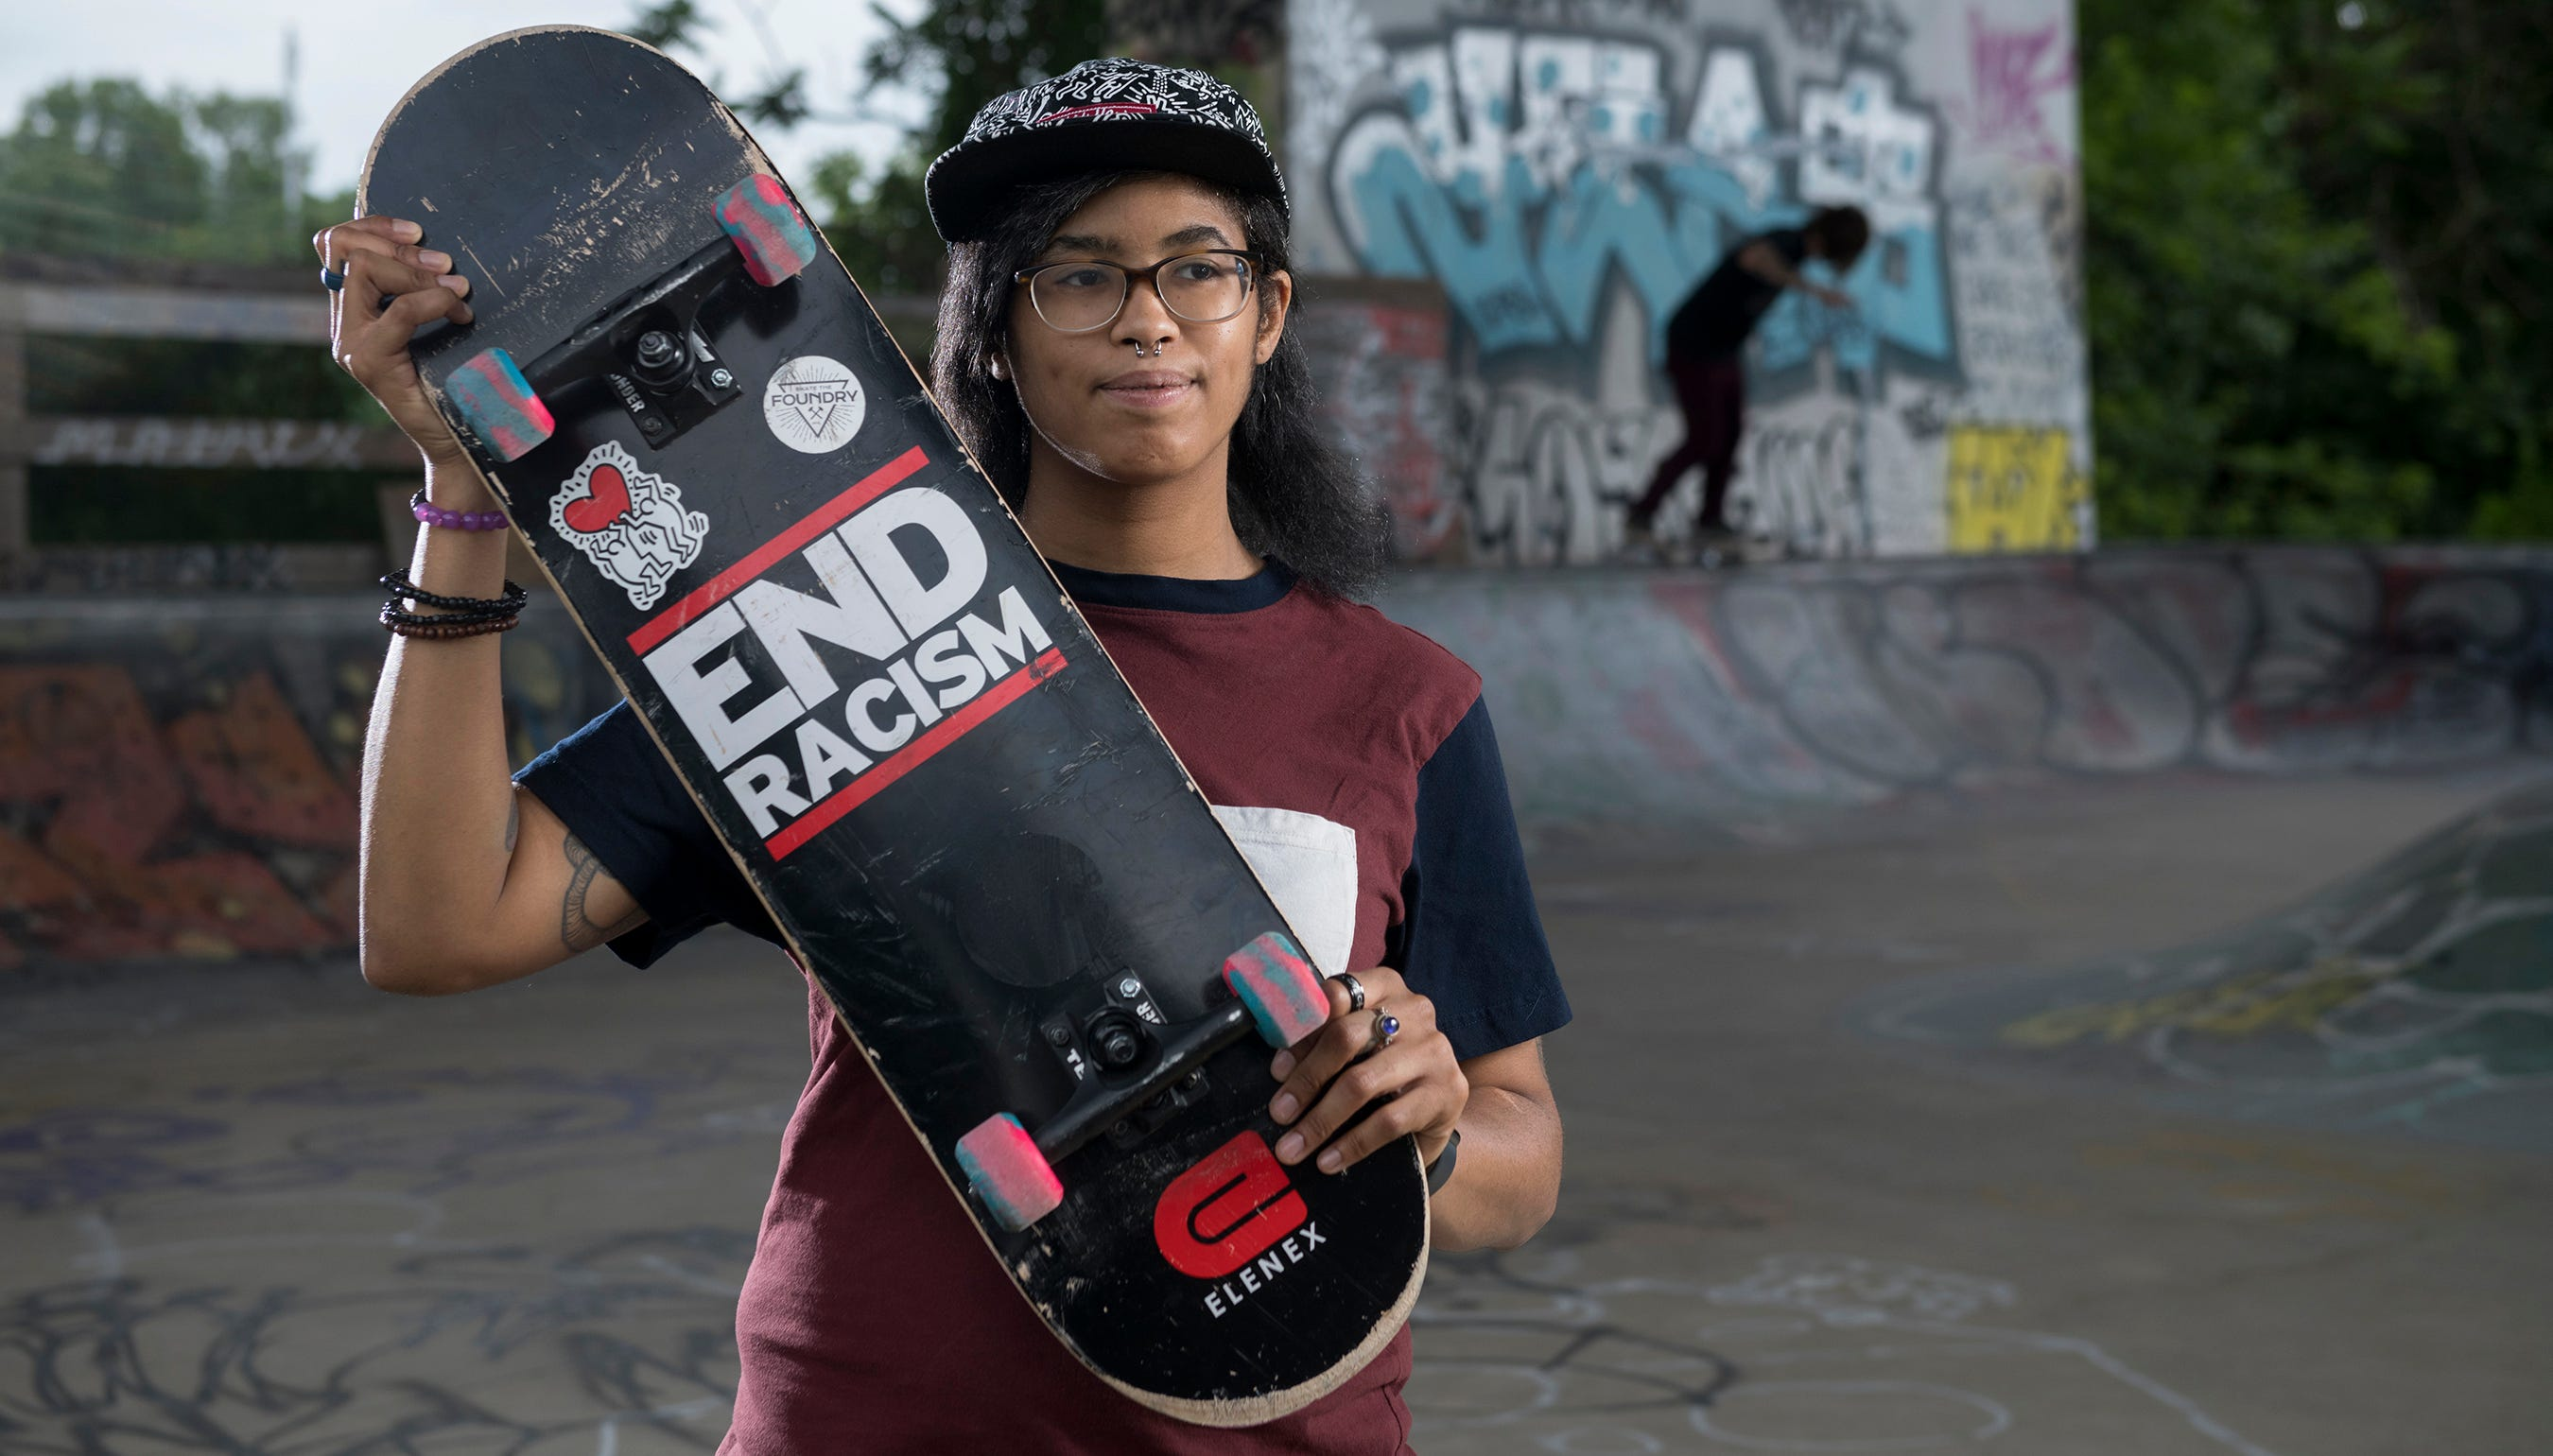 Skateboarders say the culture welcomes diversity in a way other sports don't. Here's why